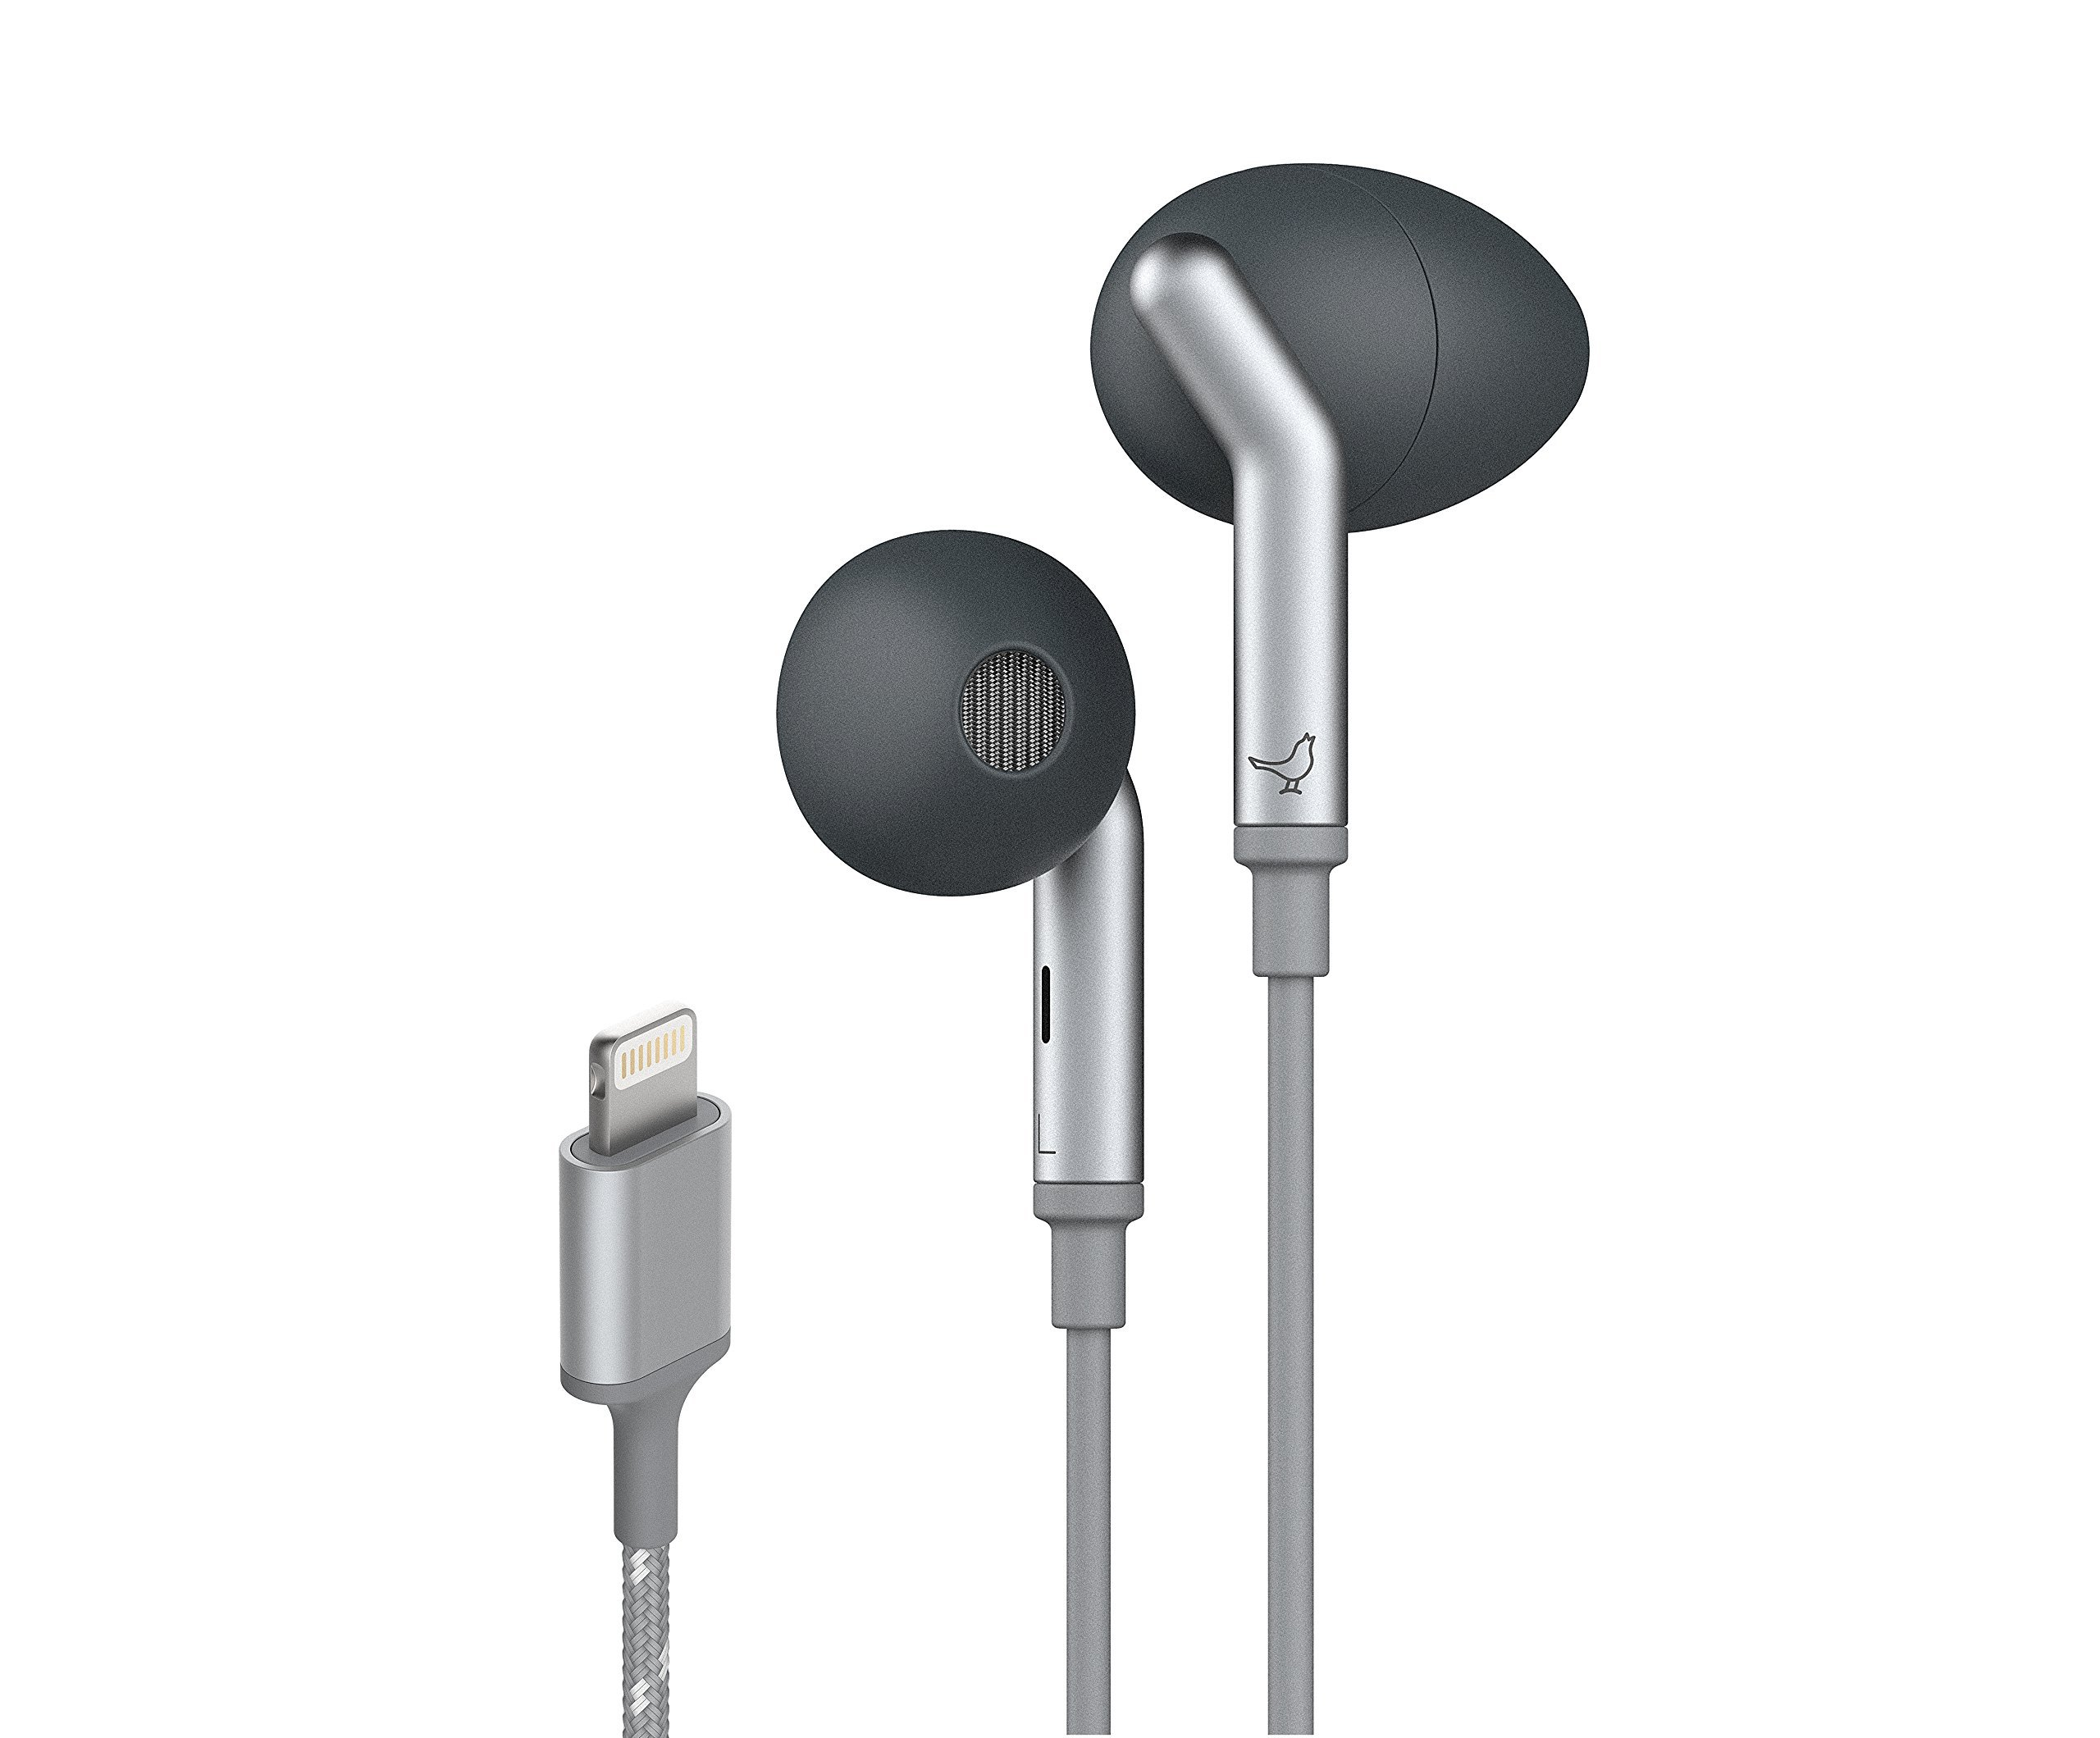 Libratone Q ADAPT Lightning In-Ear Noise Cancelling Headphones – for Apple Devices (Stormy Black) by Libratone